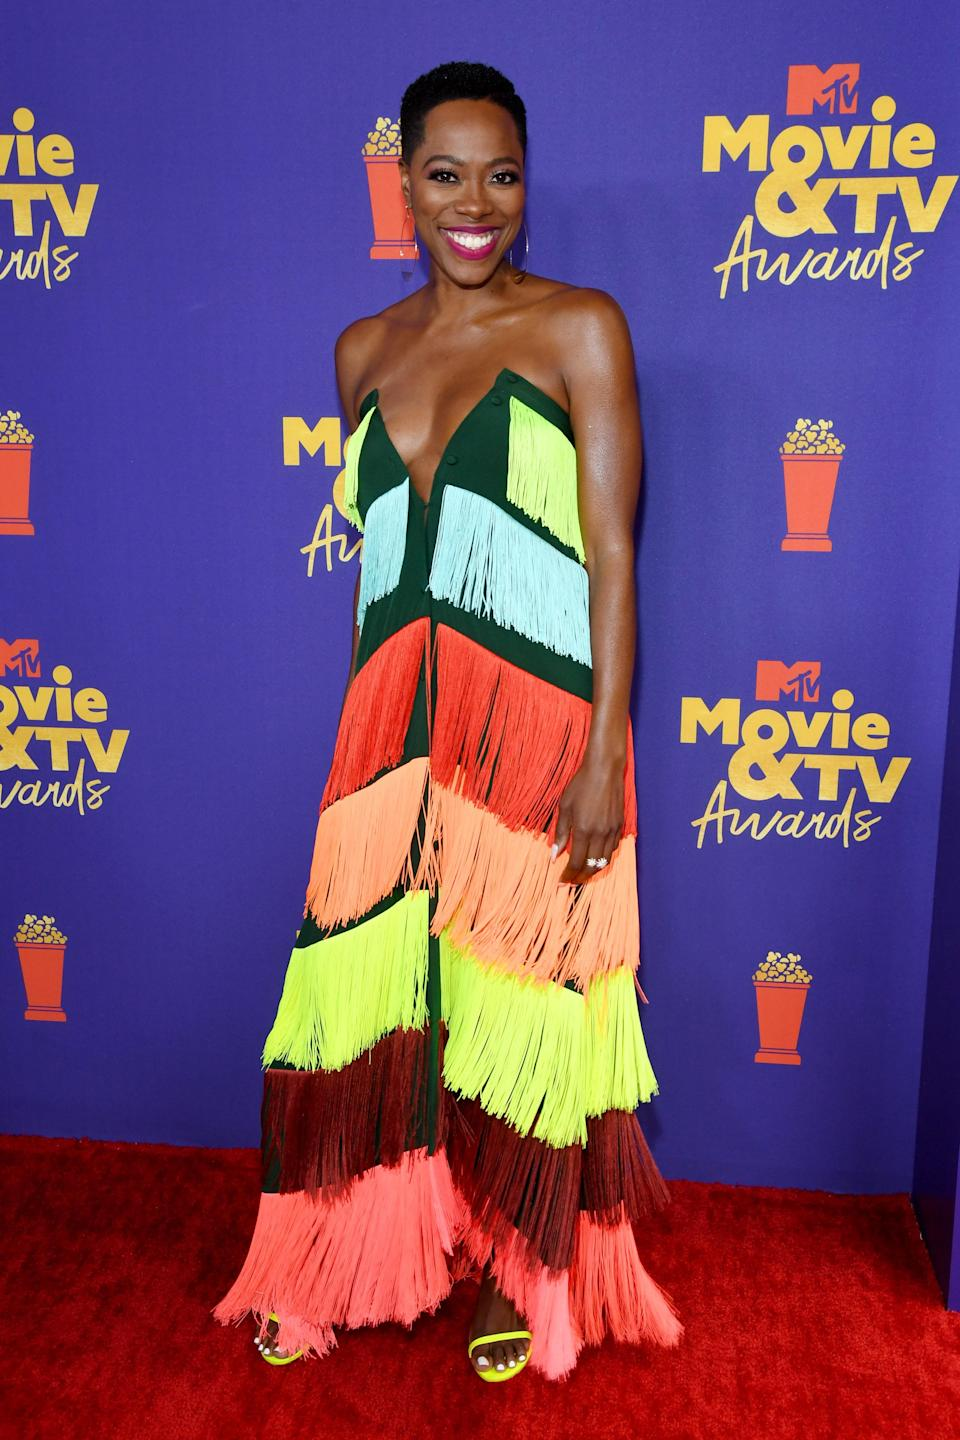 """Styled by Apuje Kalu, color-blocking was the highlight of Yvonne Orji's look. The <a href=""""https://www.teenvogue.com/story/insecure-season-4-molly-issa-friendship?mbid=synd_yahoo_rss"""" rel=""""nofollow noopener"""" target=""""_blank"""" data-ylk=""""slk:Insecure"""" class=""""link rapid-noclick-resp""""><em>Insecure</em></a> actor wore a strapless emerald Mimi Plange dress adorned with a cascade of colorful fringe. Not one to shy away from color, Yvonne rocked a bright red lip and bold neon Stuart Weissman heels to match."""